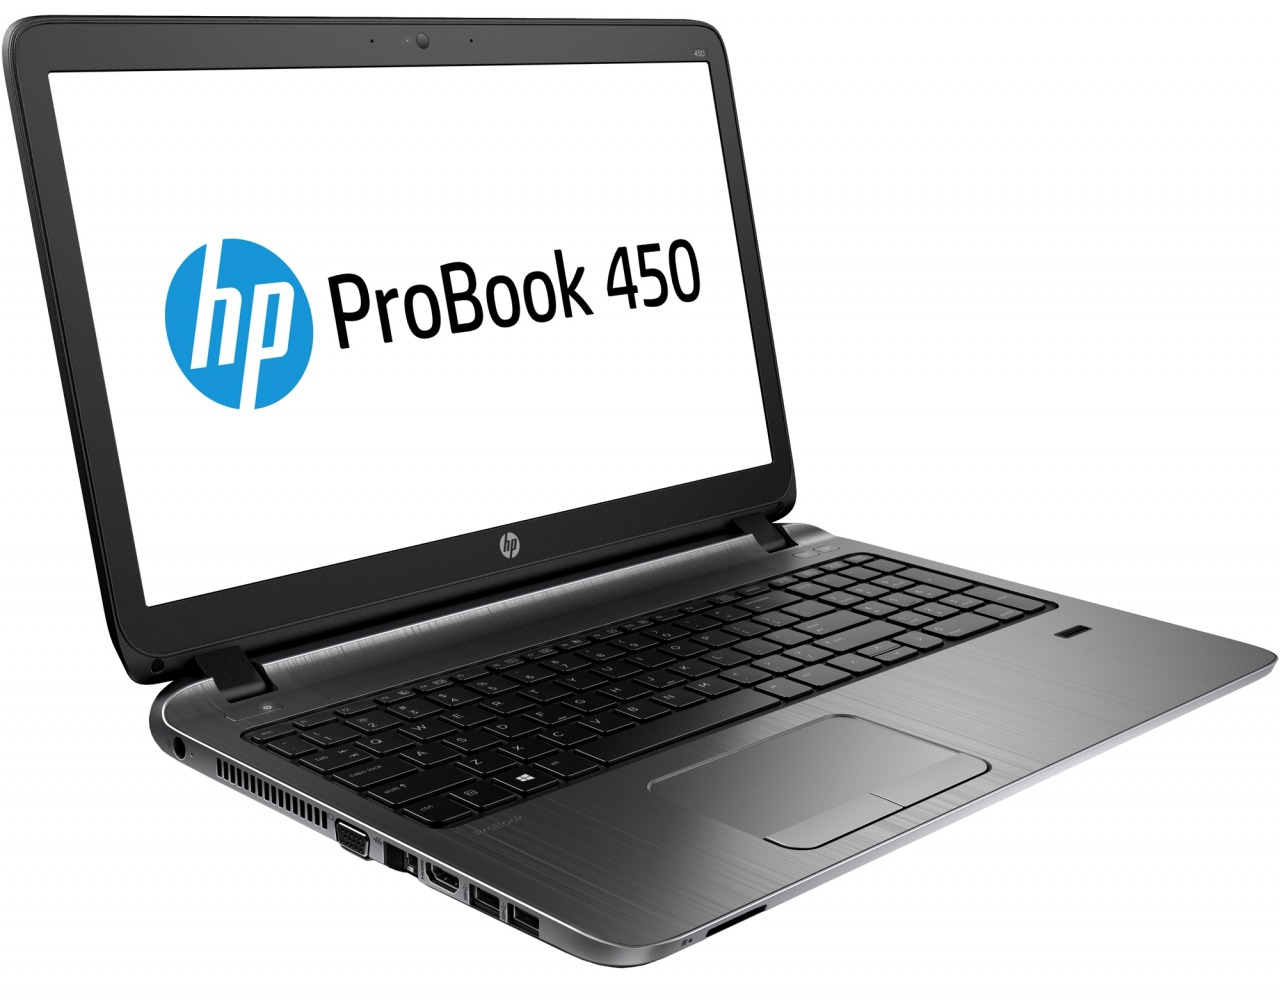 laptop hp probook 450 g2 _3.jpg